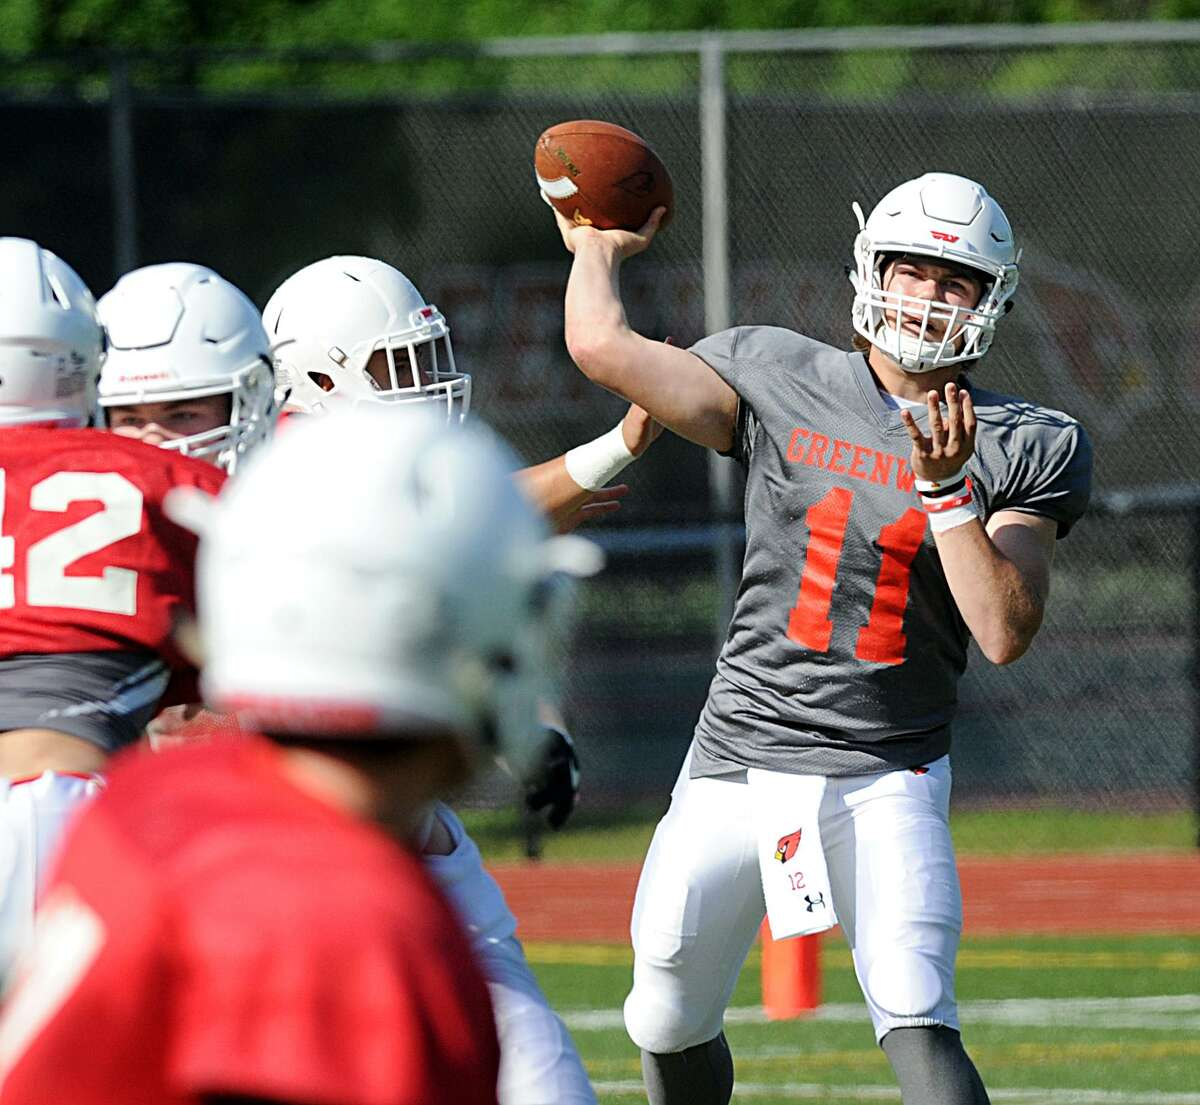 Greenwich quarterback Gavin Muir (#11) of the white team throws a pass during the annual Red vs. White Greenwich High School football scrimmage at Cardinal Stadium in Greenwich, Conn., Saturday, June 16, 2018.